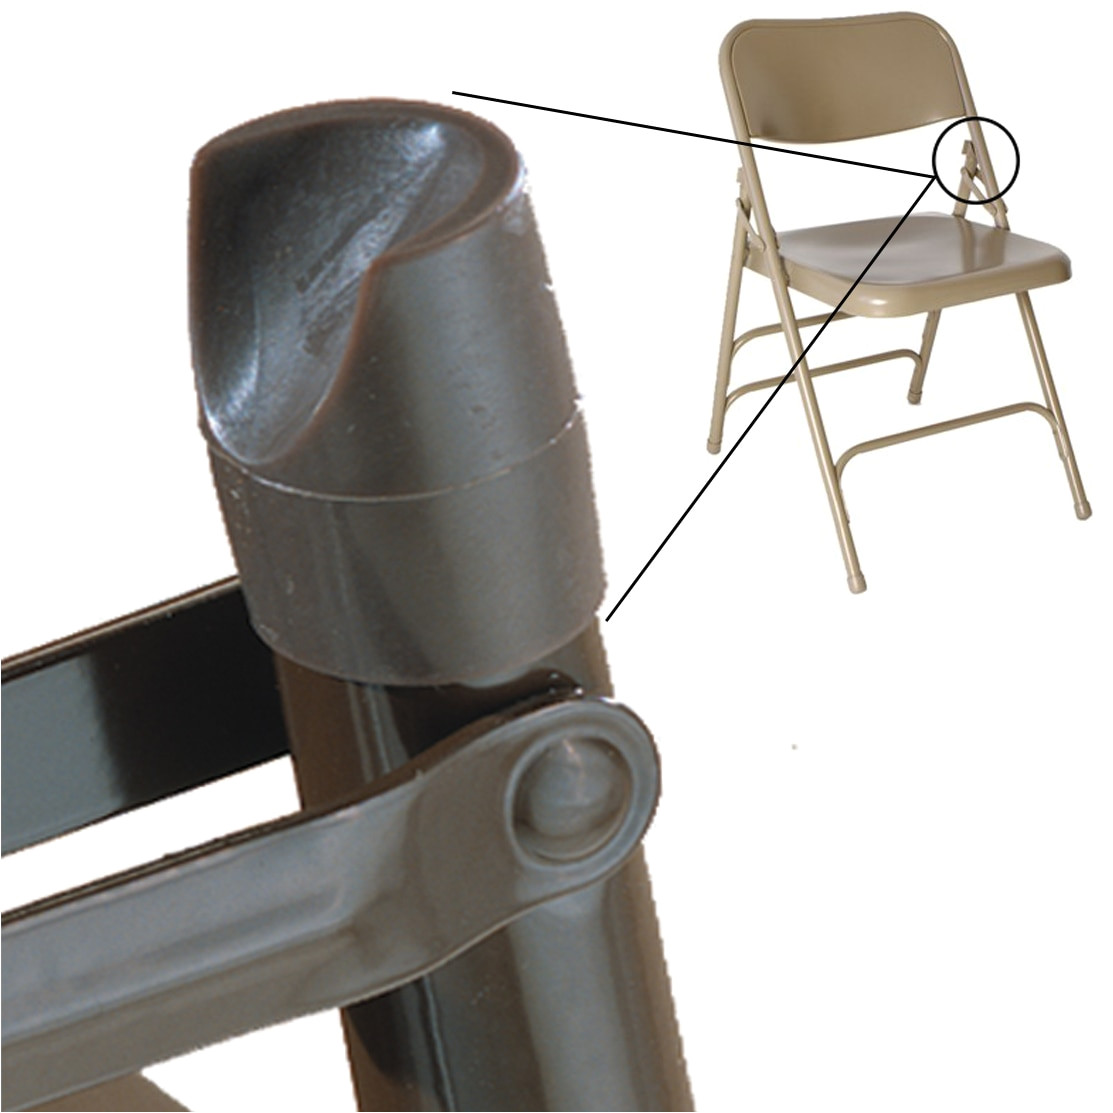 individual pieces plastic stability caps for metal and padded folding chairs fits 7